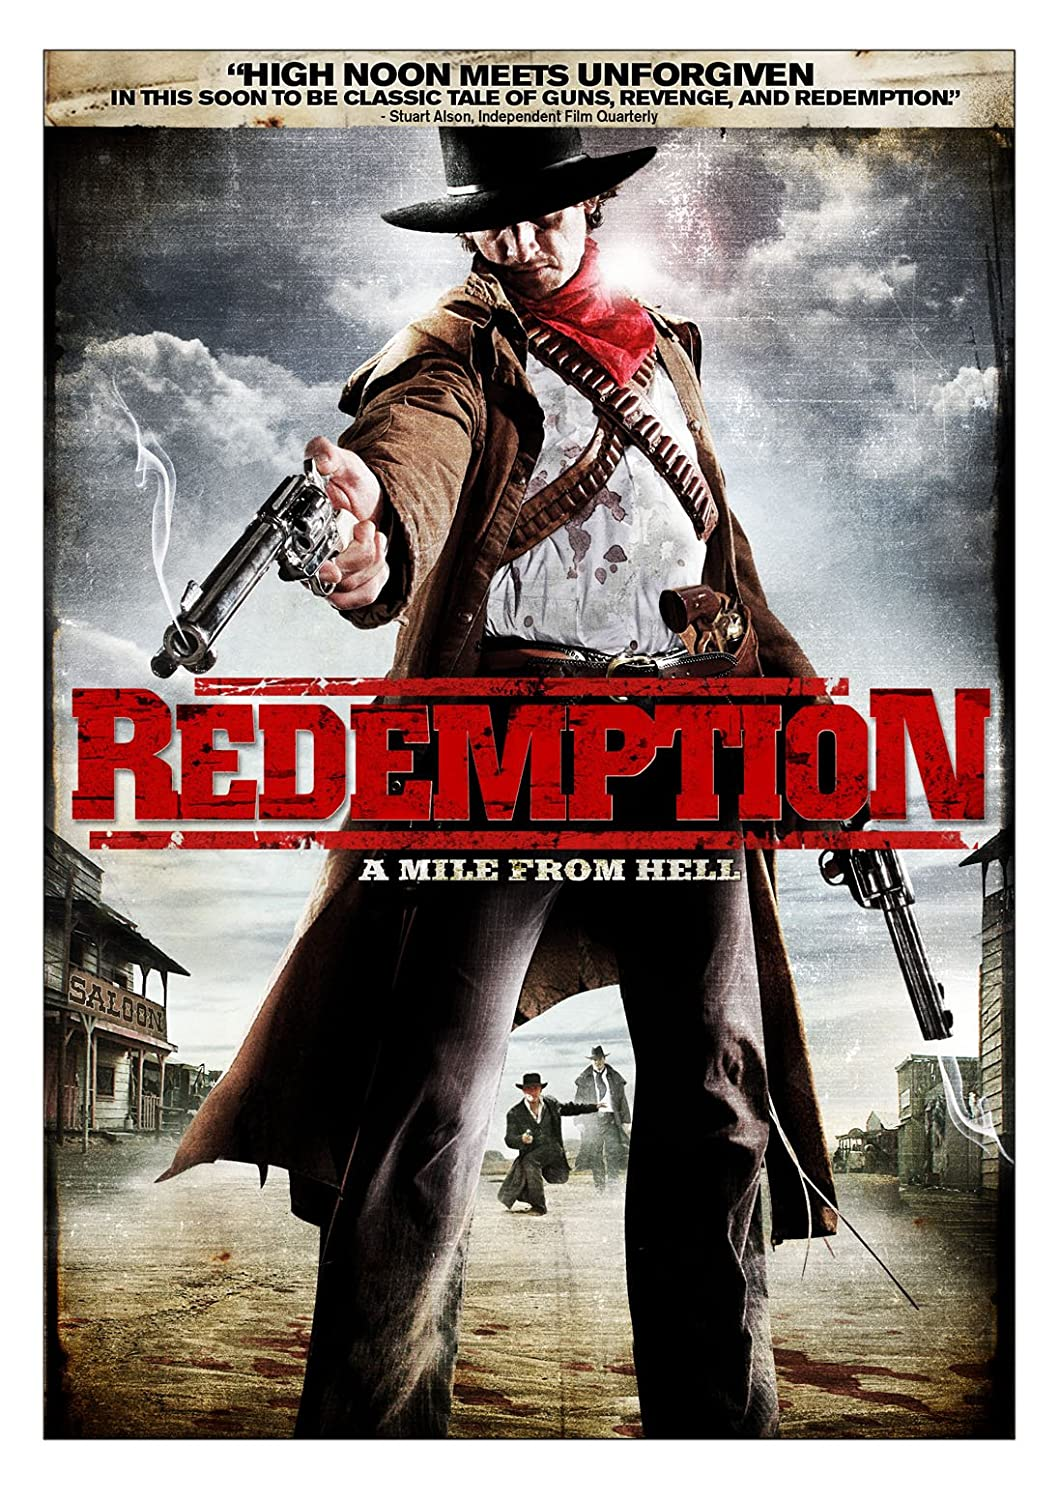 Amazon.com: Redemption: Dustin Leighton, Tom Noga, Clint James, Robert  Conway: Movies & TV